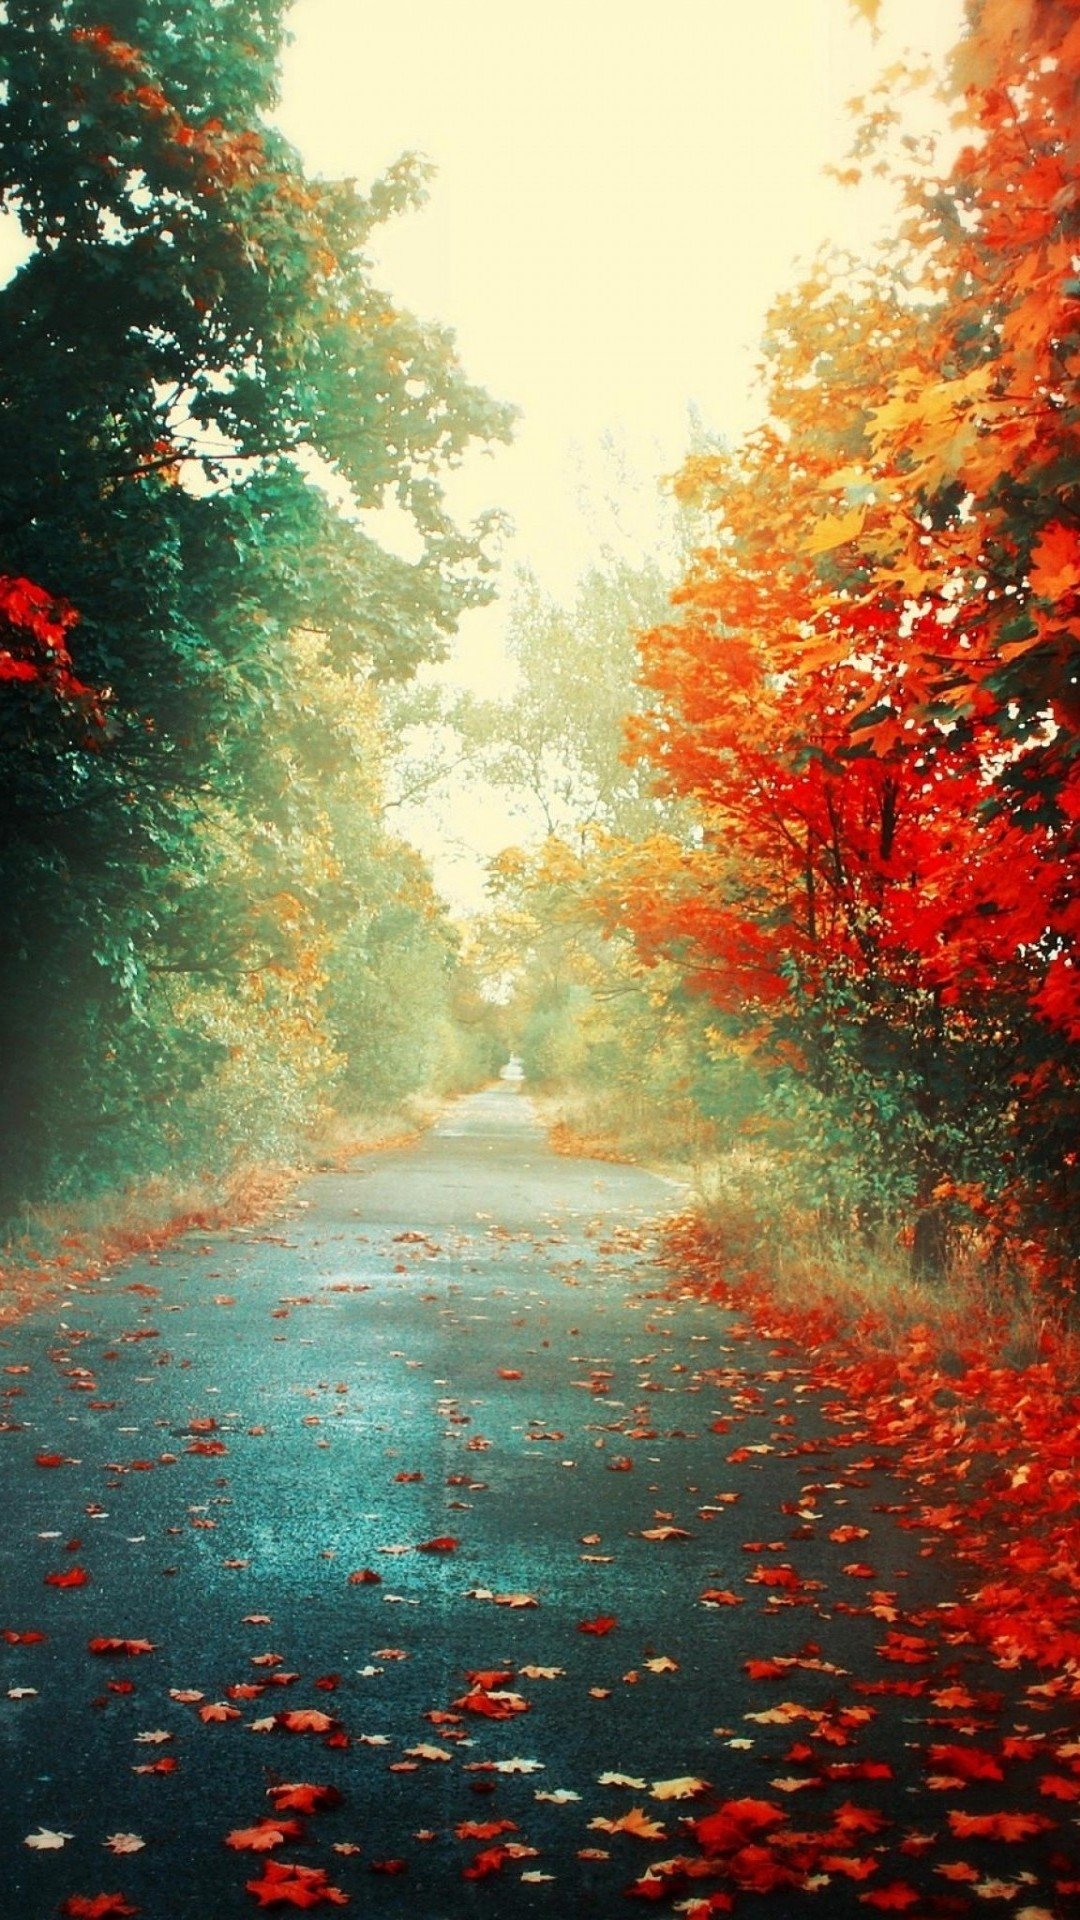 1080x1920 Autumn RoadSamsung Wallpaper Download | Free Samsung Wallpapers